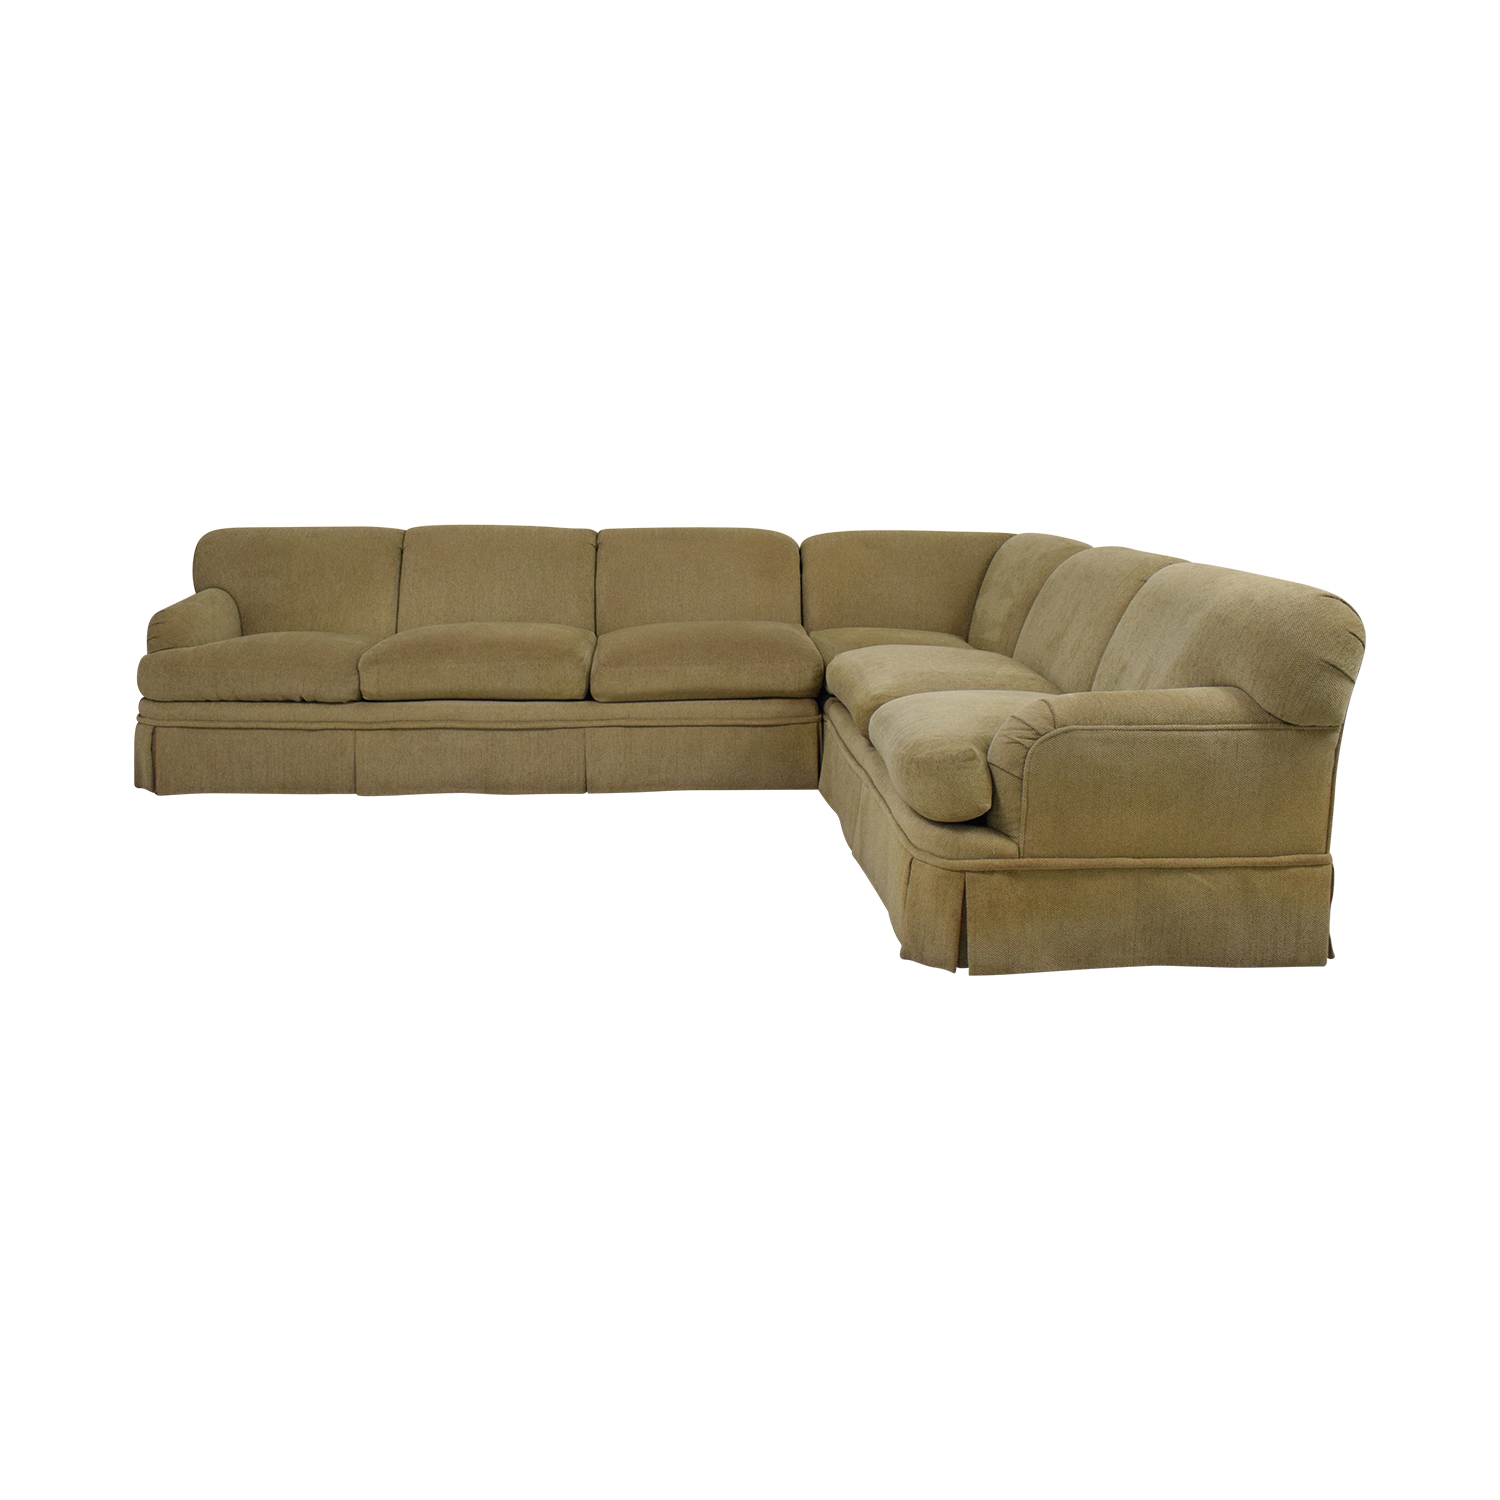 Swaim Swaim Reflex Rolled Arm Sectional Sofa used